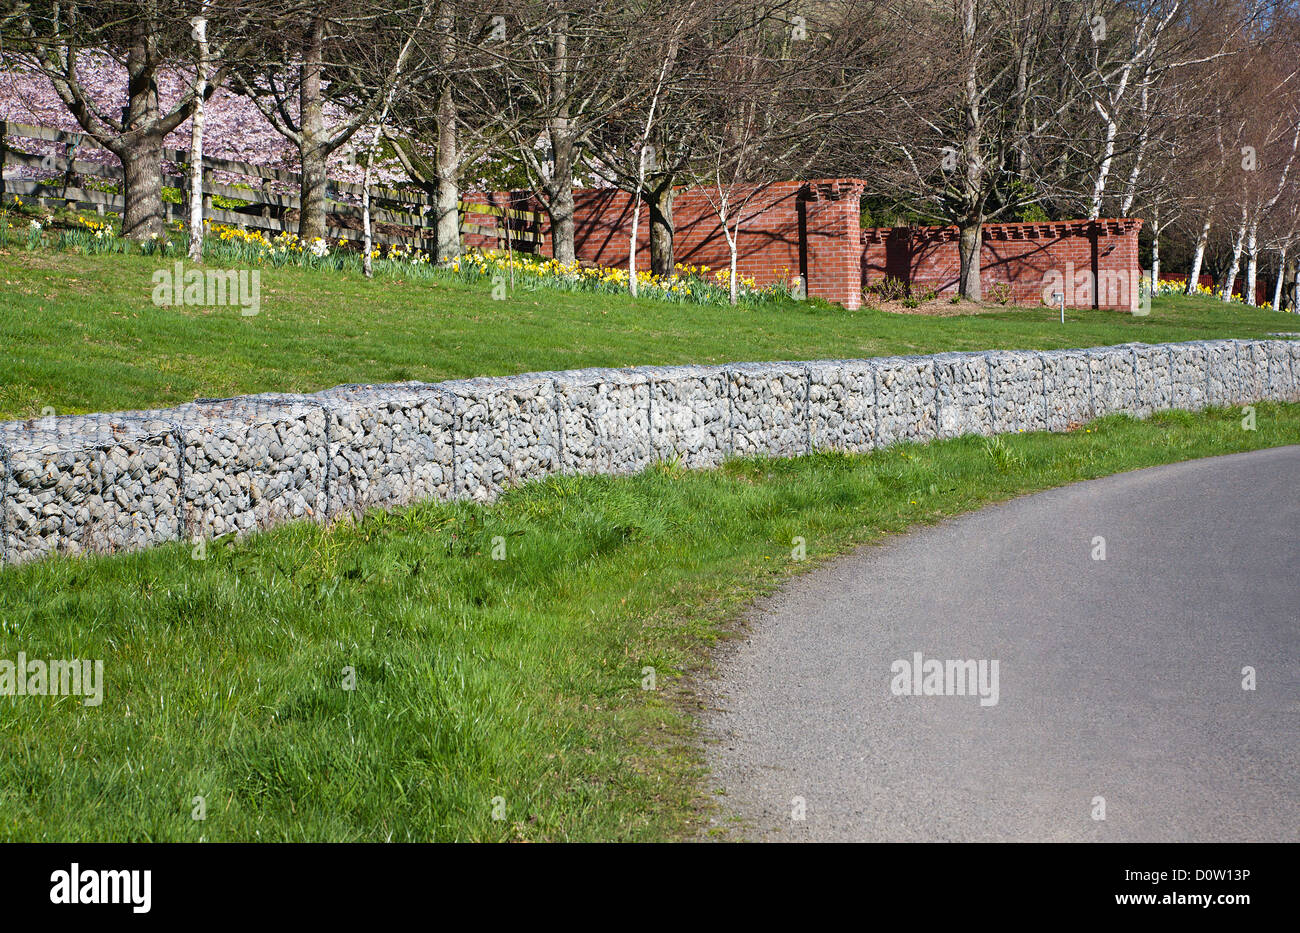 A structural crib retaining wall made of Gabion baskets using stones and galvanized wire. - Stock Image